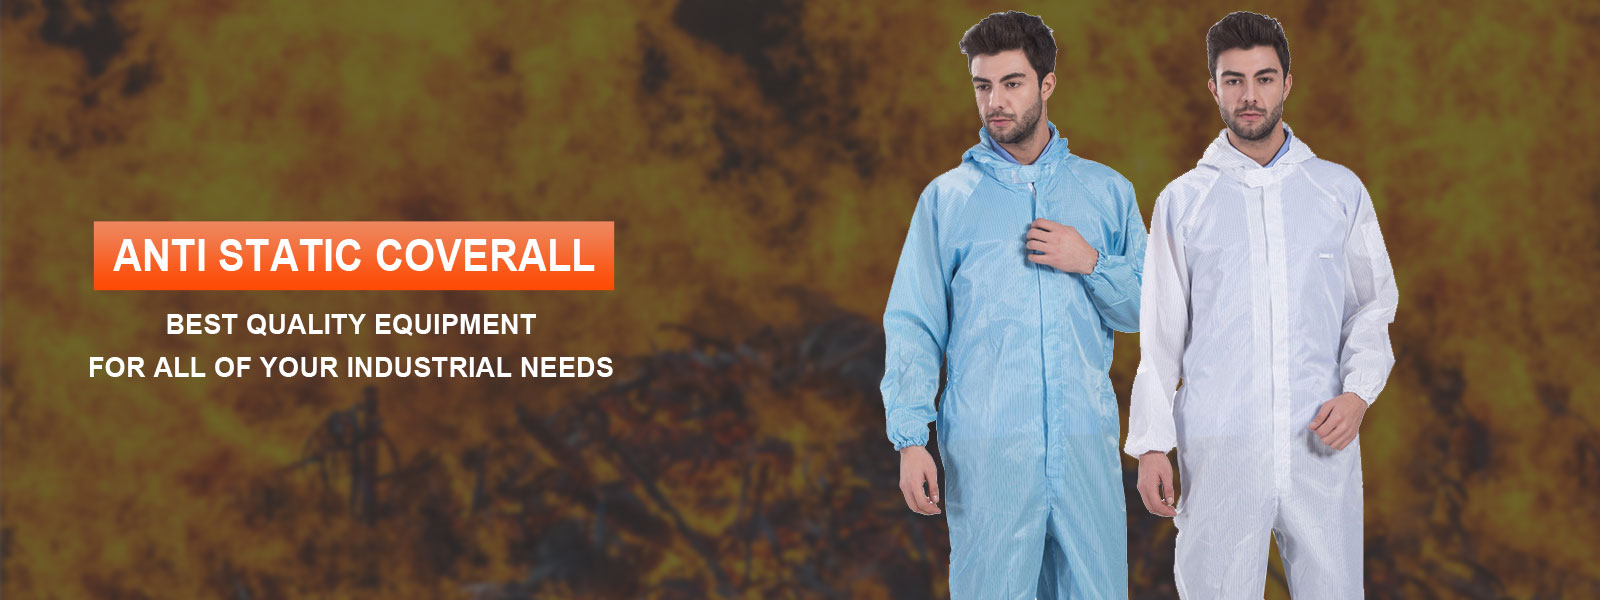 Anti Static Coverall Manufacturers in Niger